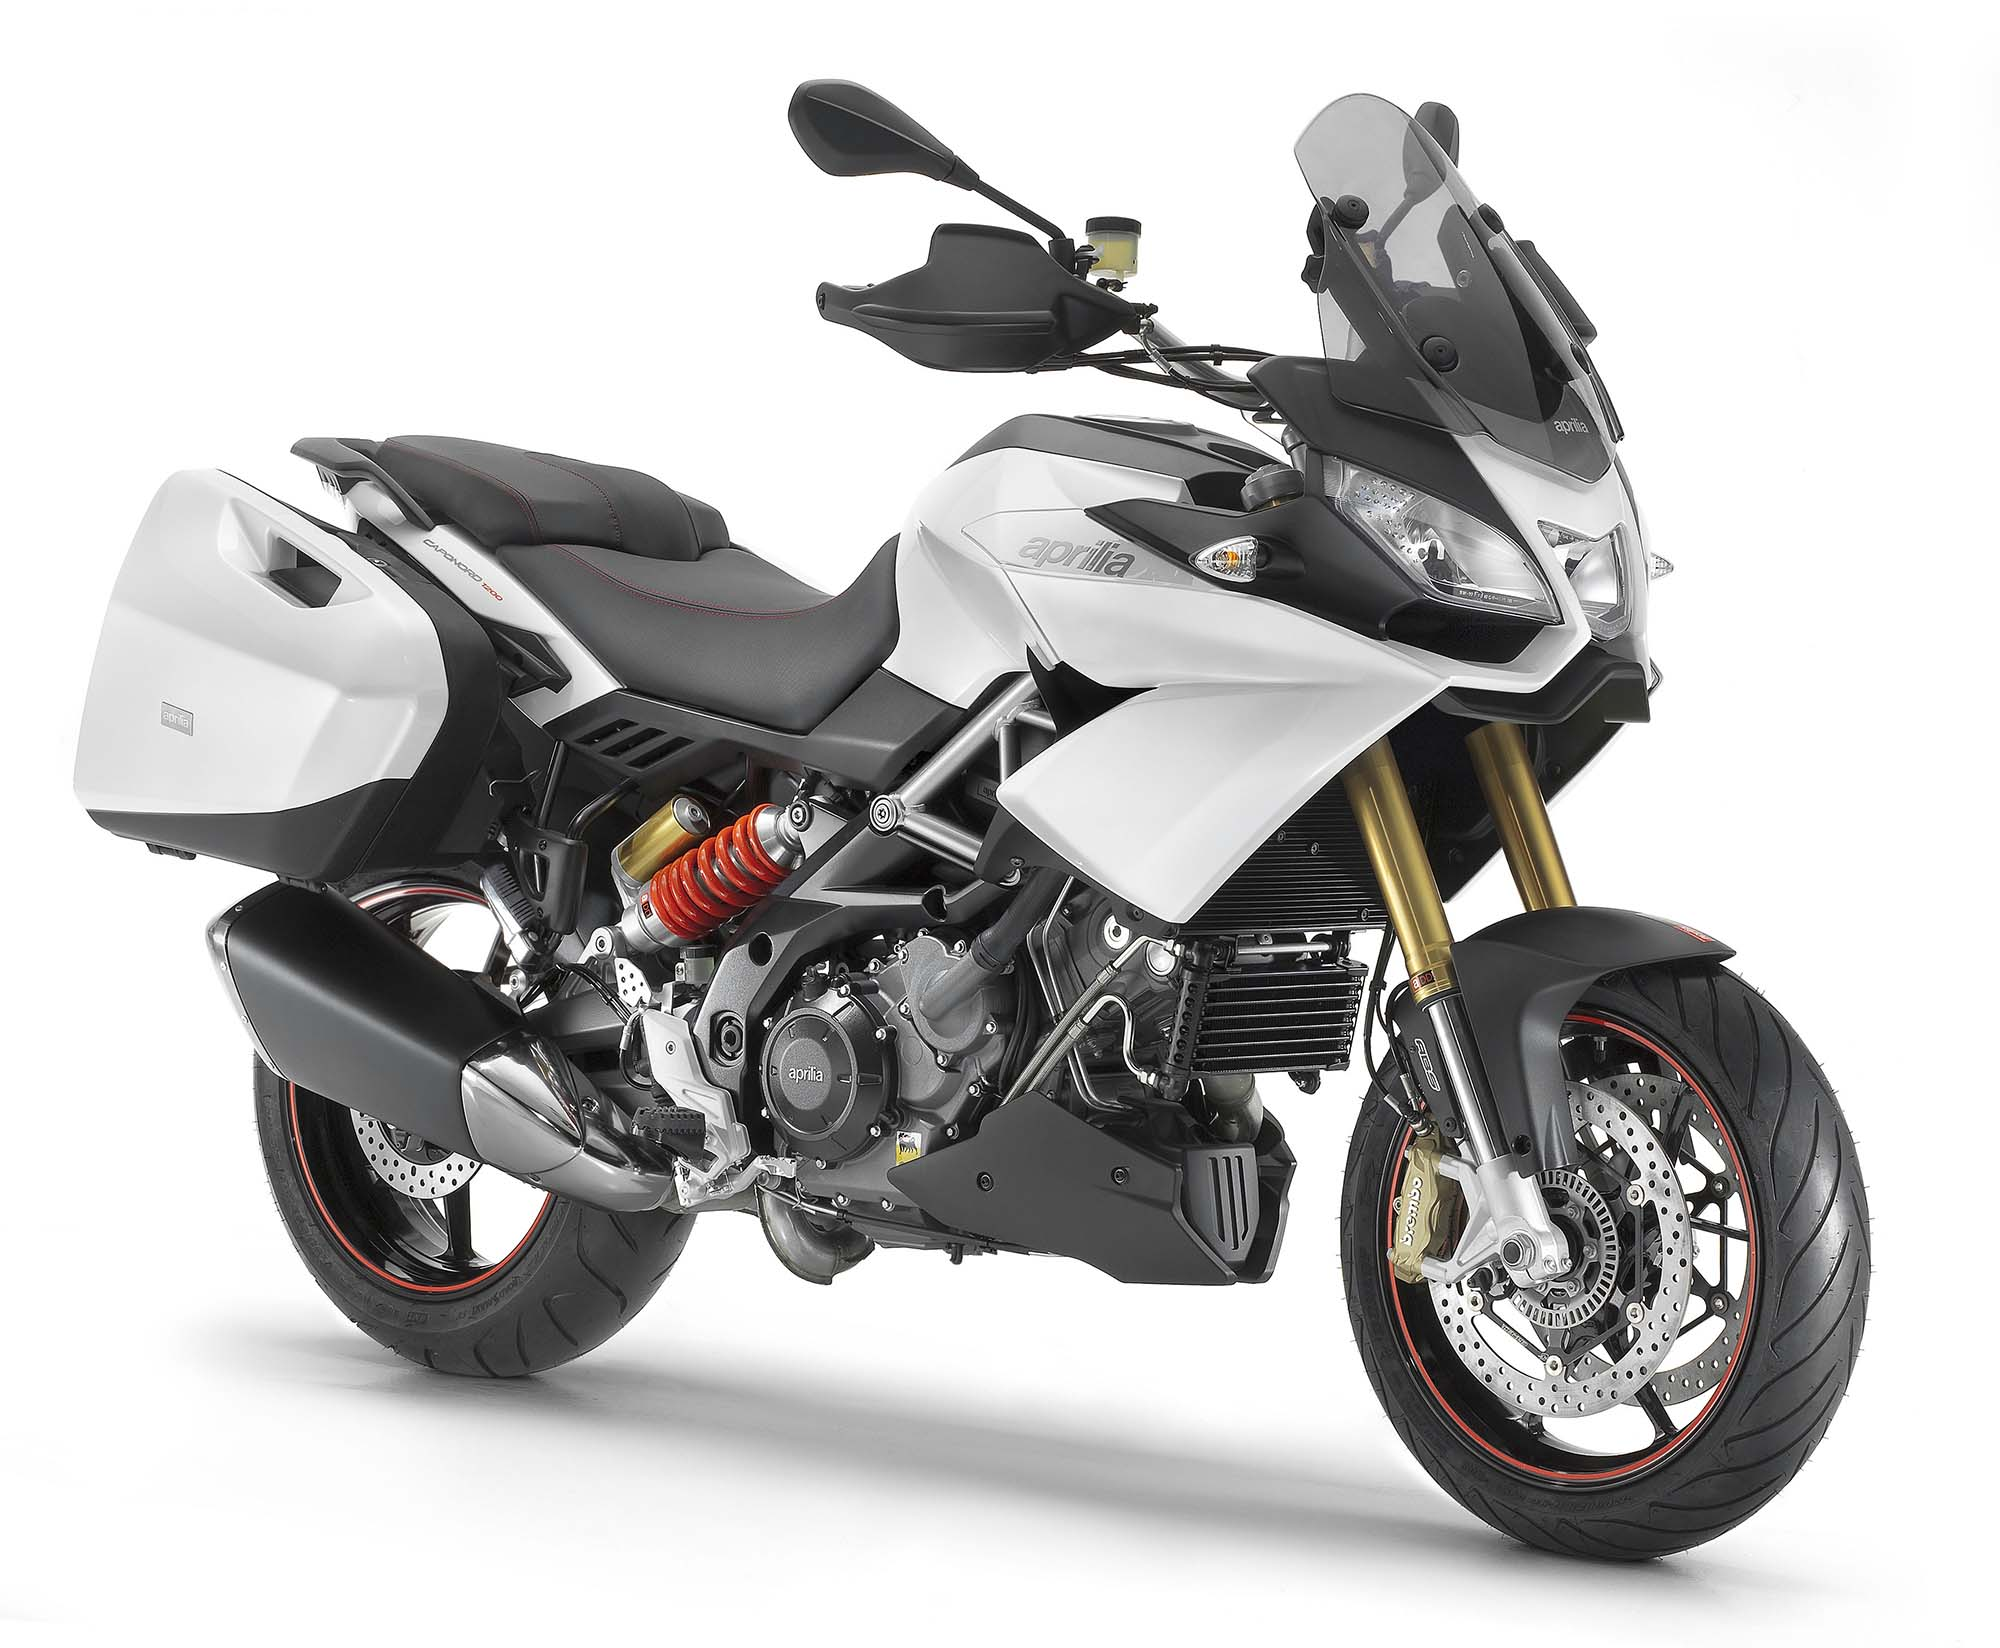 2013 aprilia caponord 1200 with aprilia dynamic damping asphalt rubber. Black Bedroom Furniture Sets. Home Design Ideas